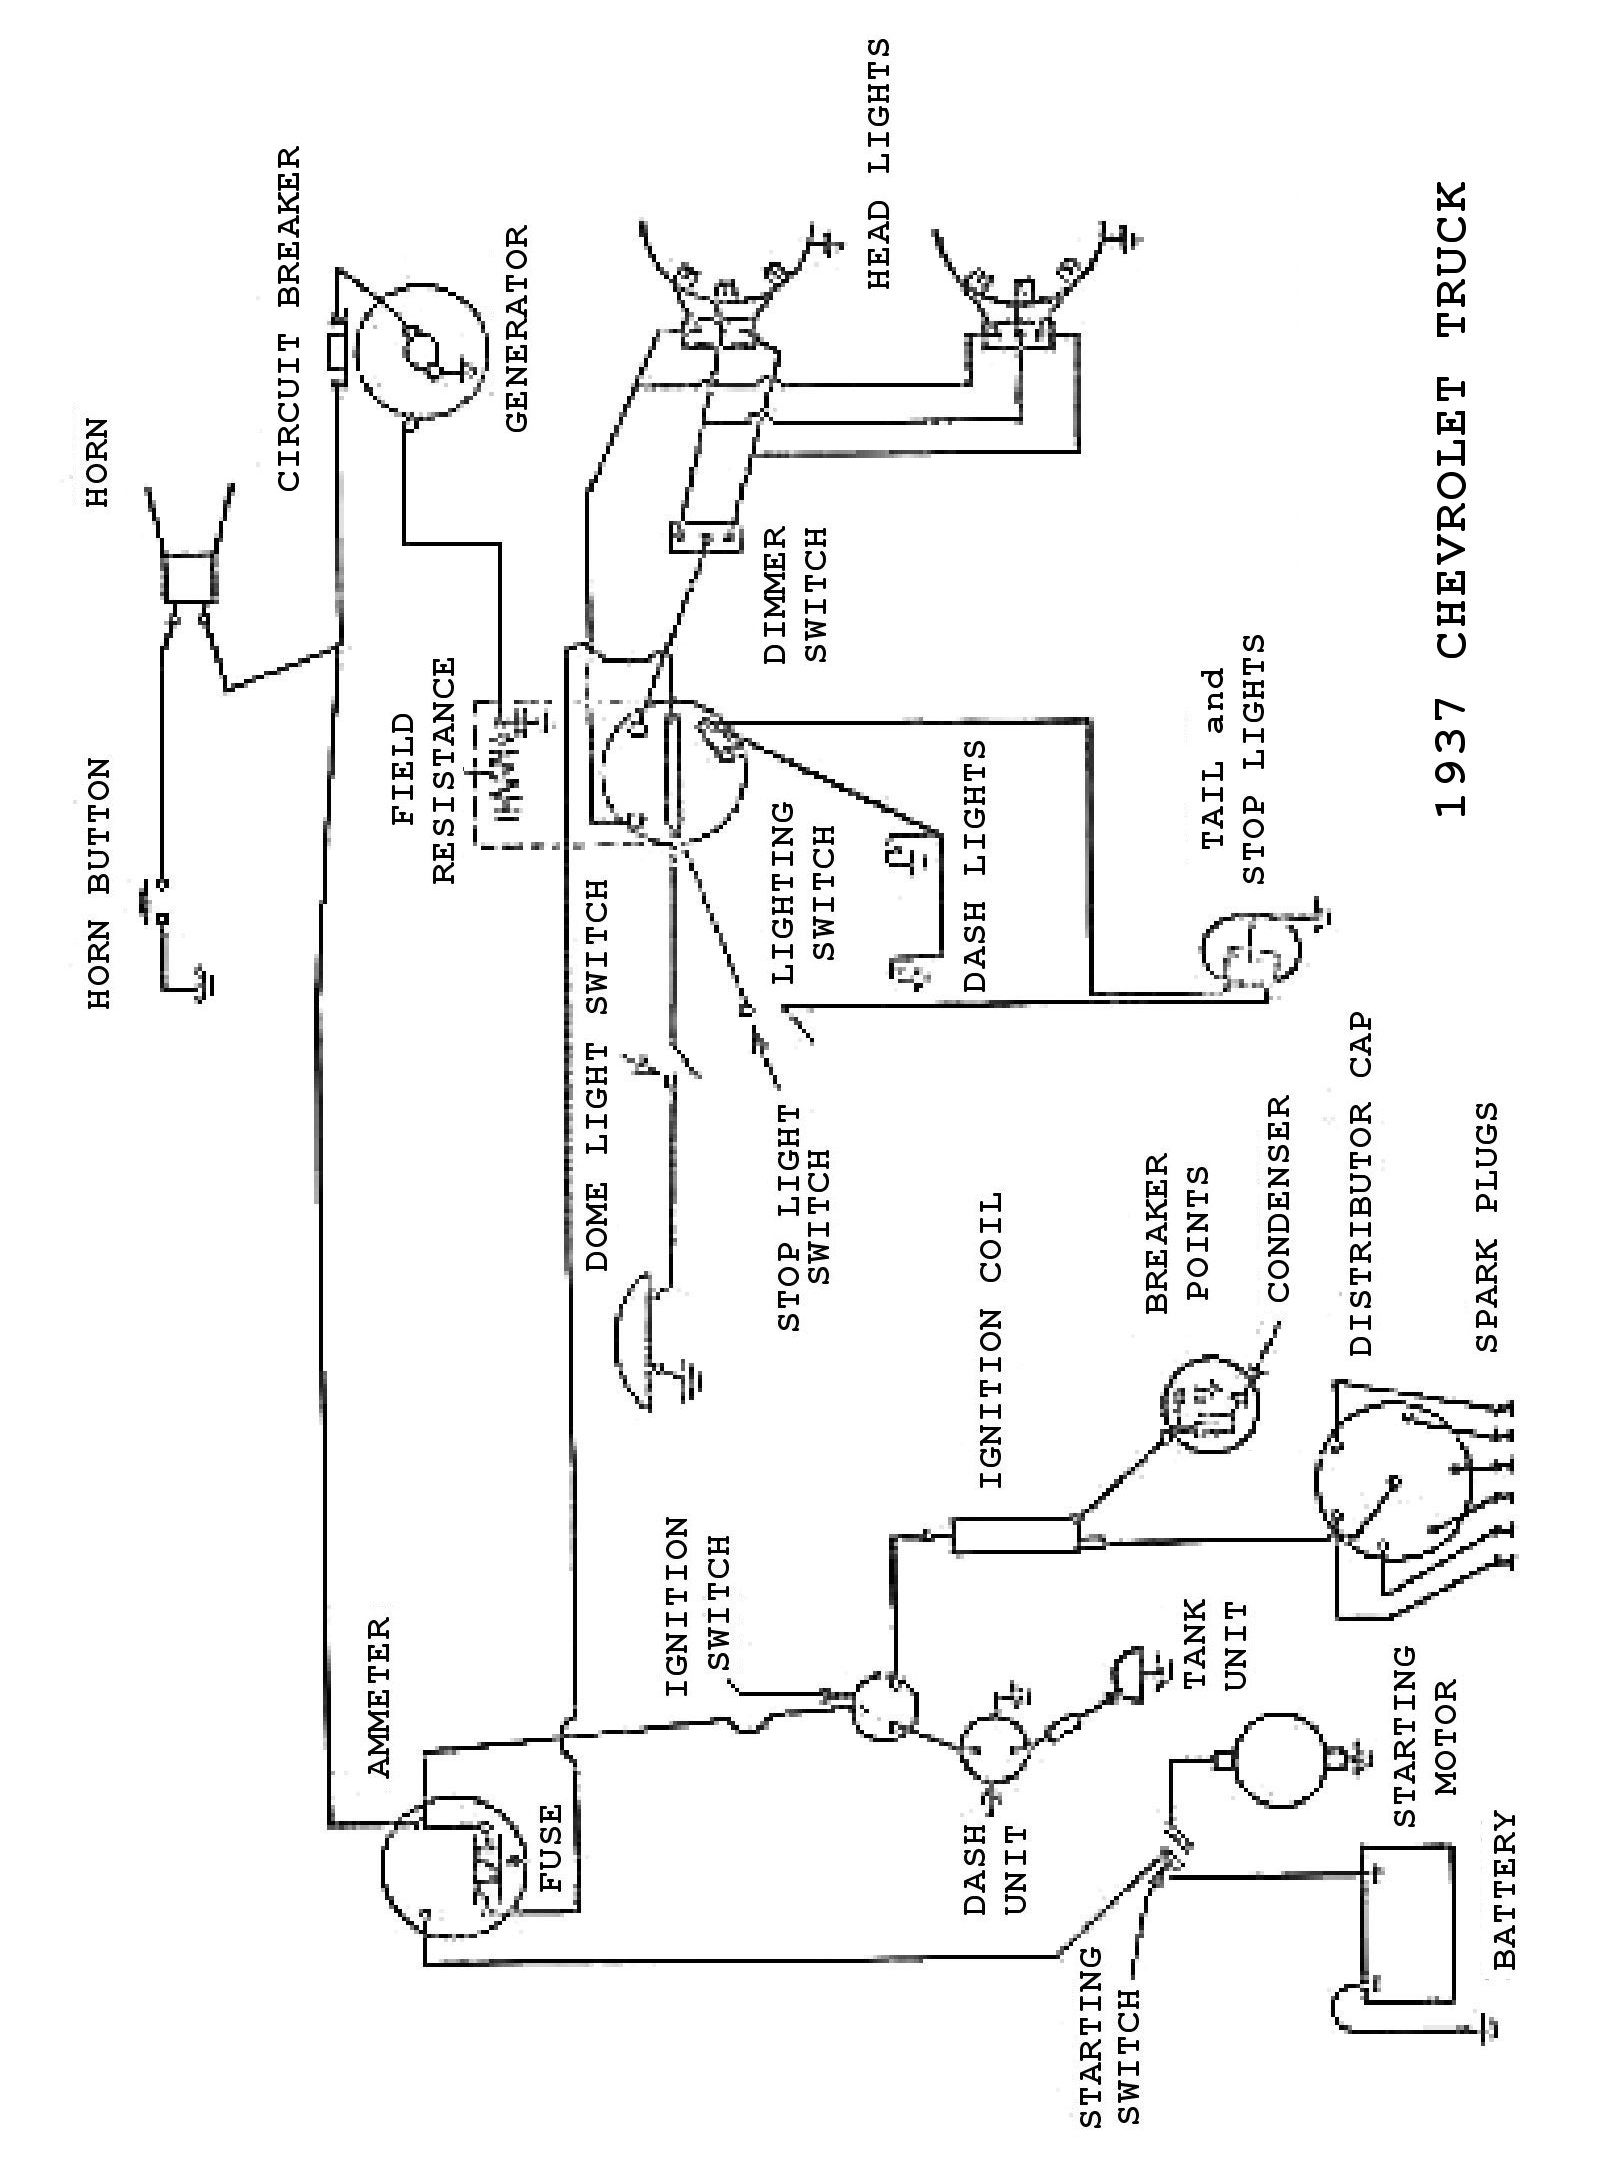 1941 dodge wiring diagram wiring diagram schematics2004 volvo xc90 wiring diagram besides 1950 chevy 3100 pick up rat 1941 dodge wiring diagram